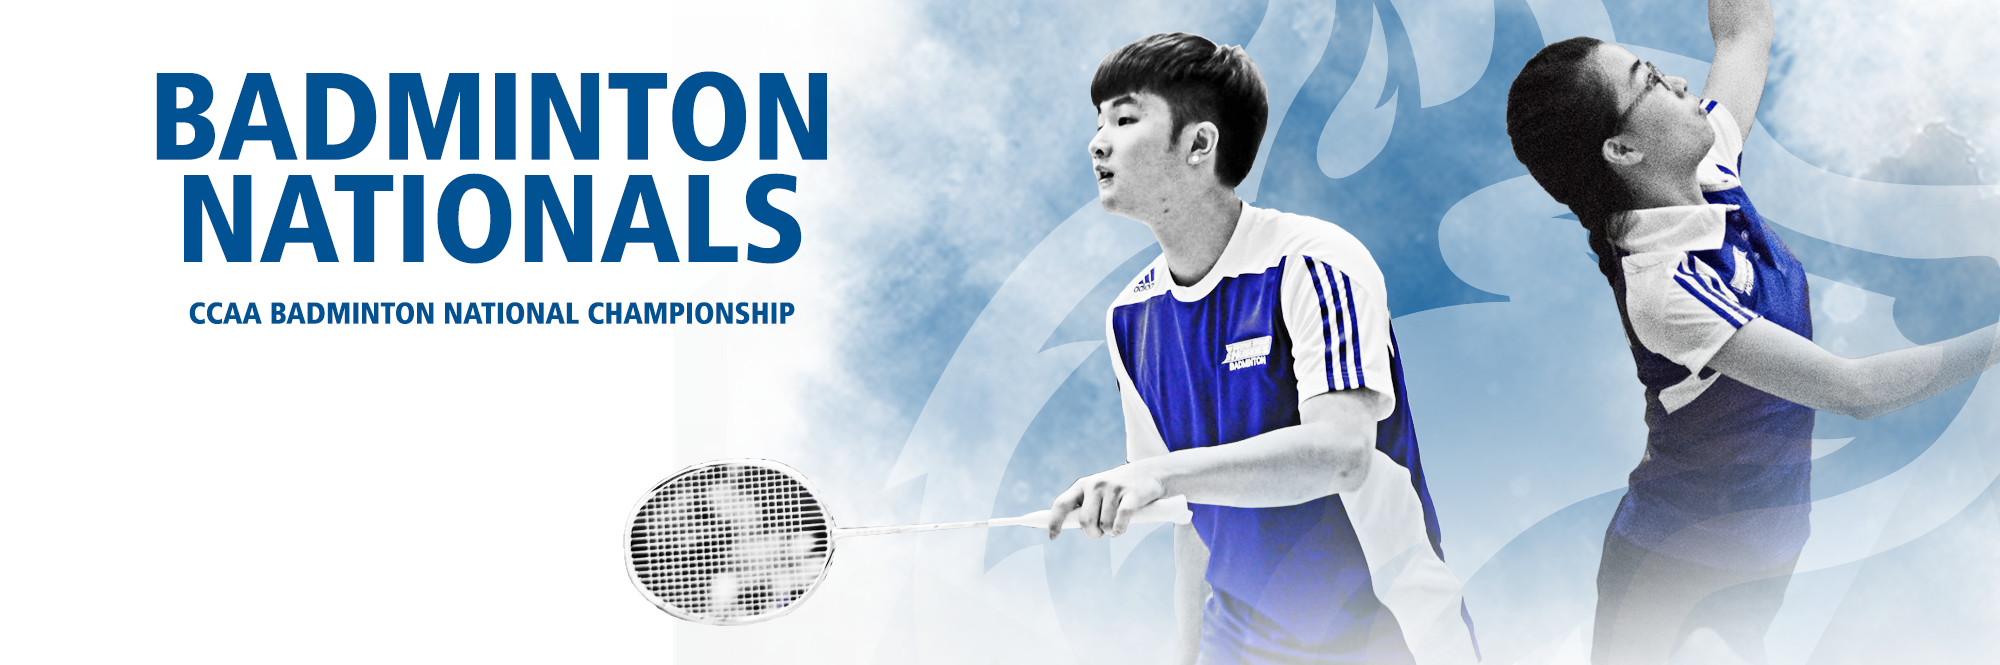 HUSKIES BADMINTON HEADED EAST FOR CCAA NATIONAL CHAMPIONSHIP AT DALHOUSIE